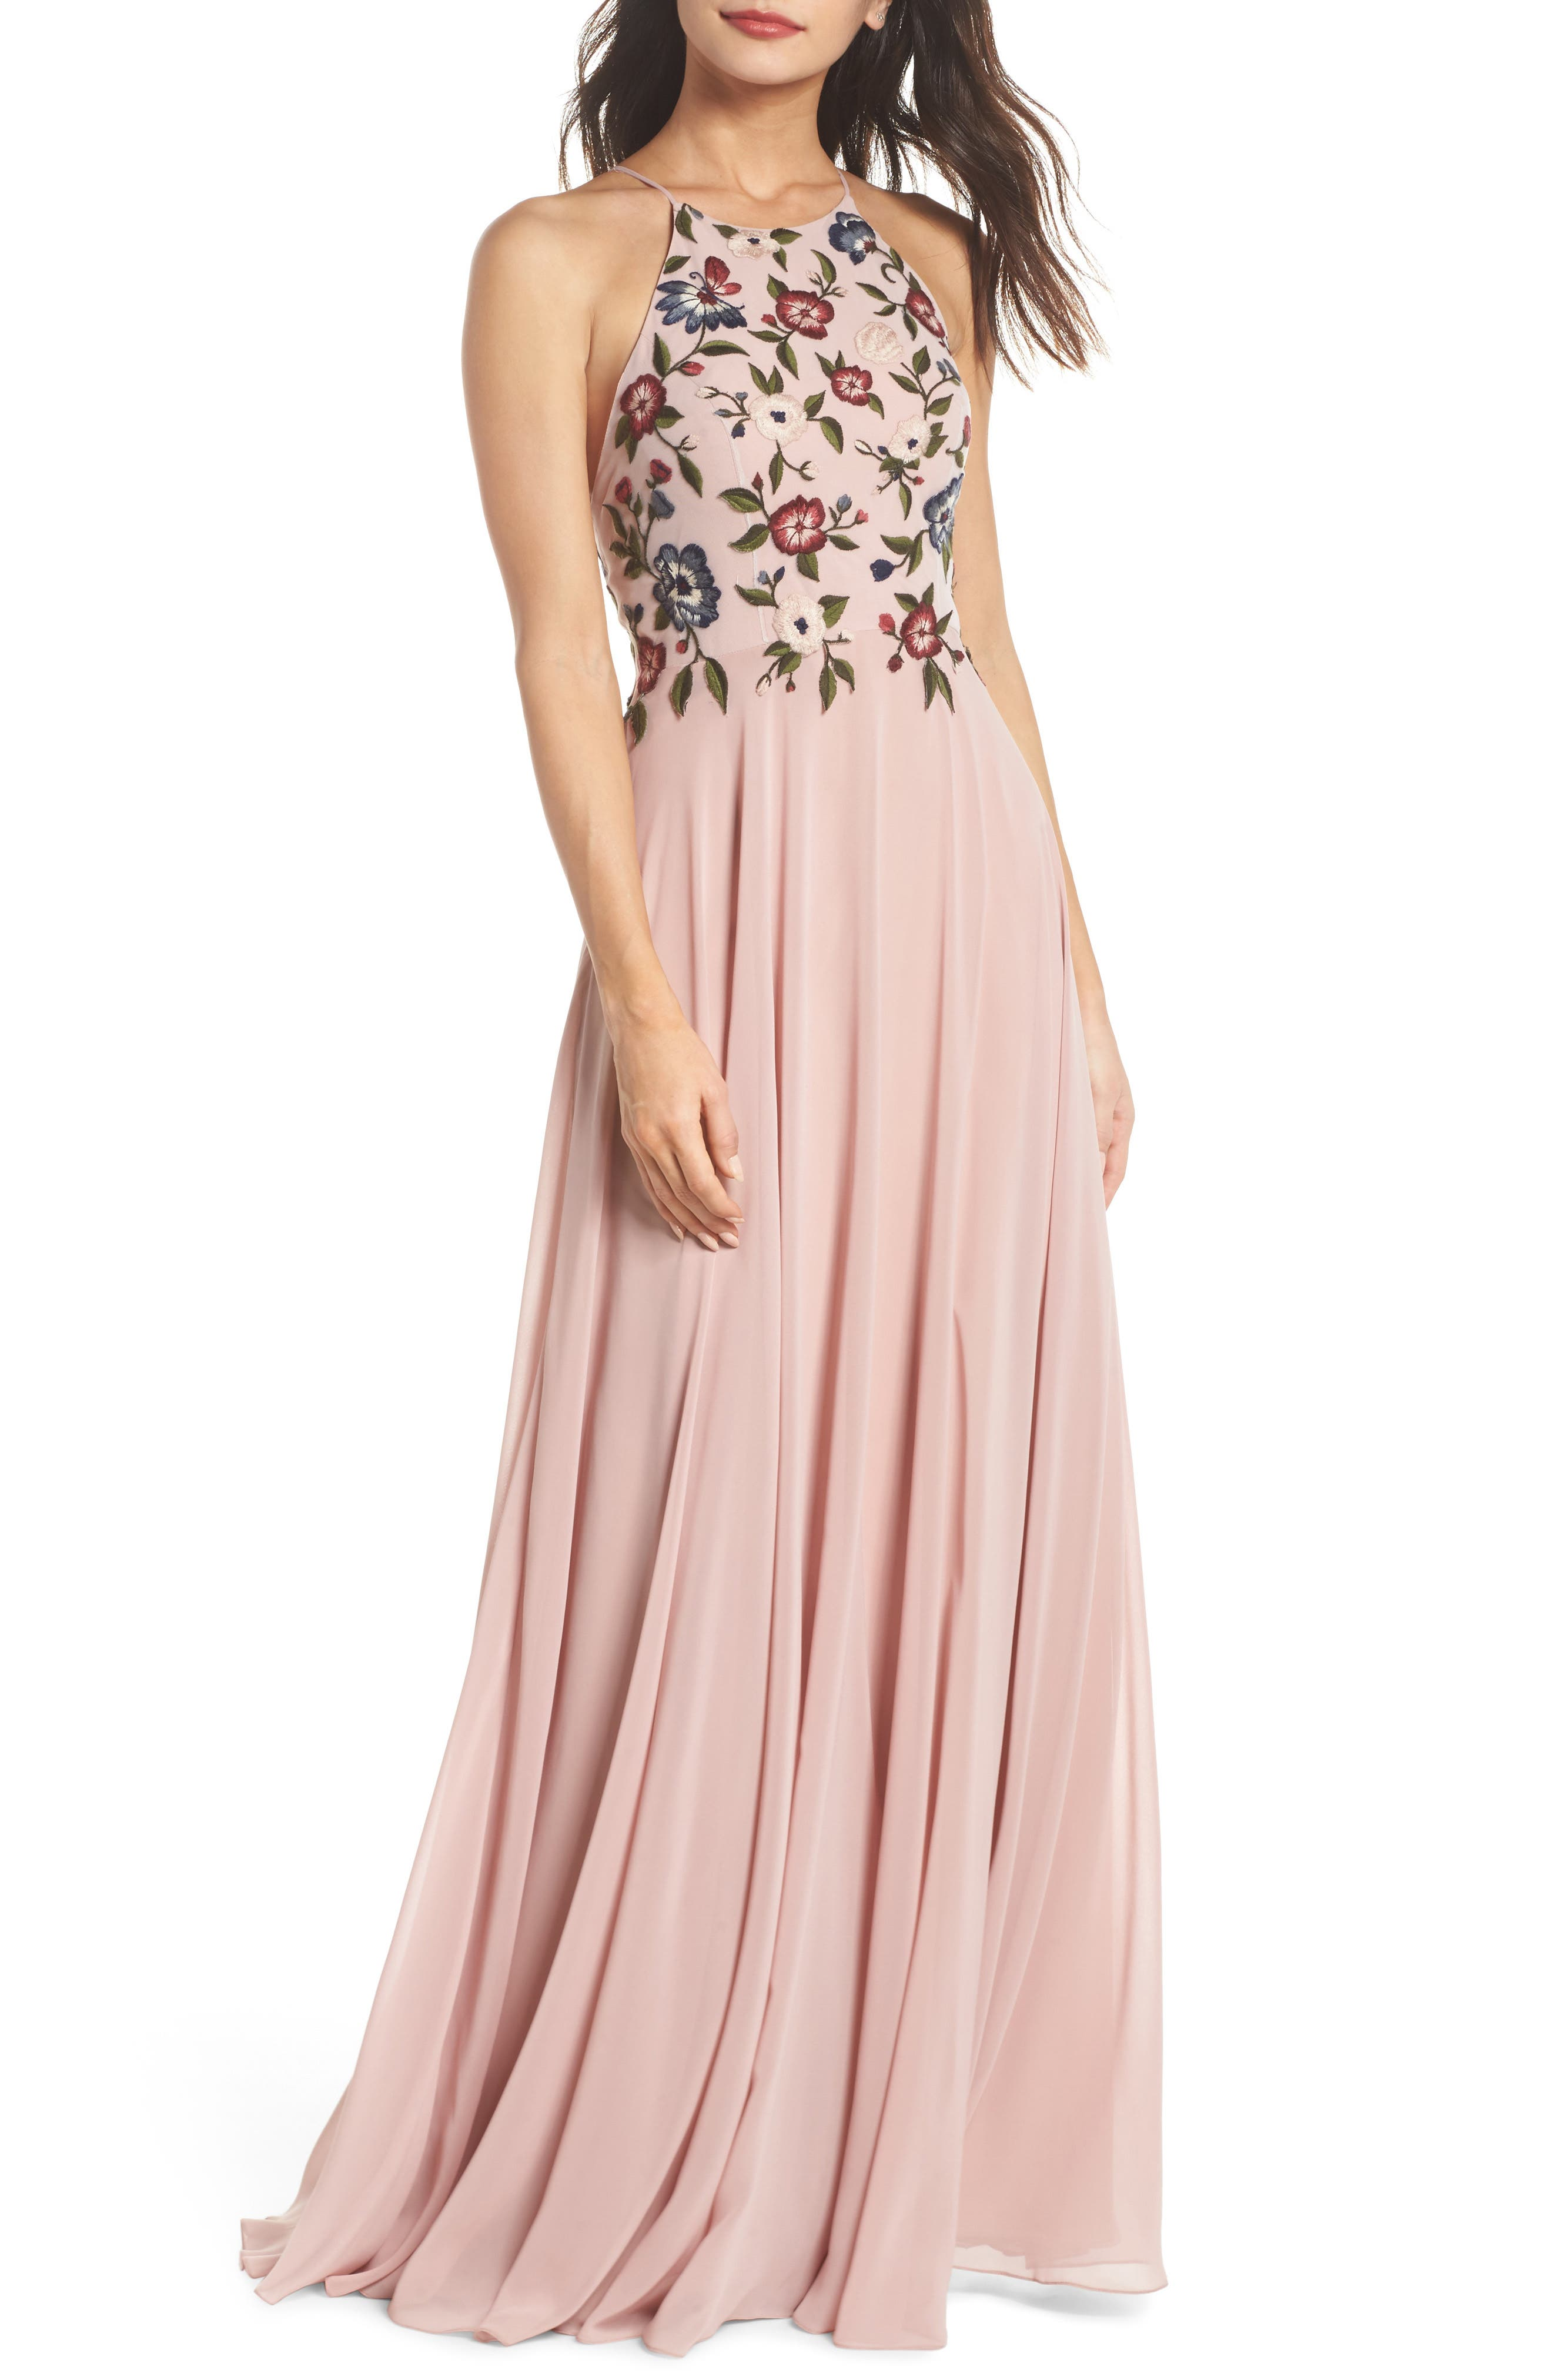 Main Image - Jenny Yoo Sophie Embroidered Luxe Chiffon Gown